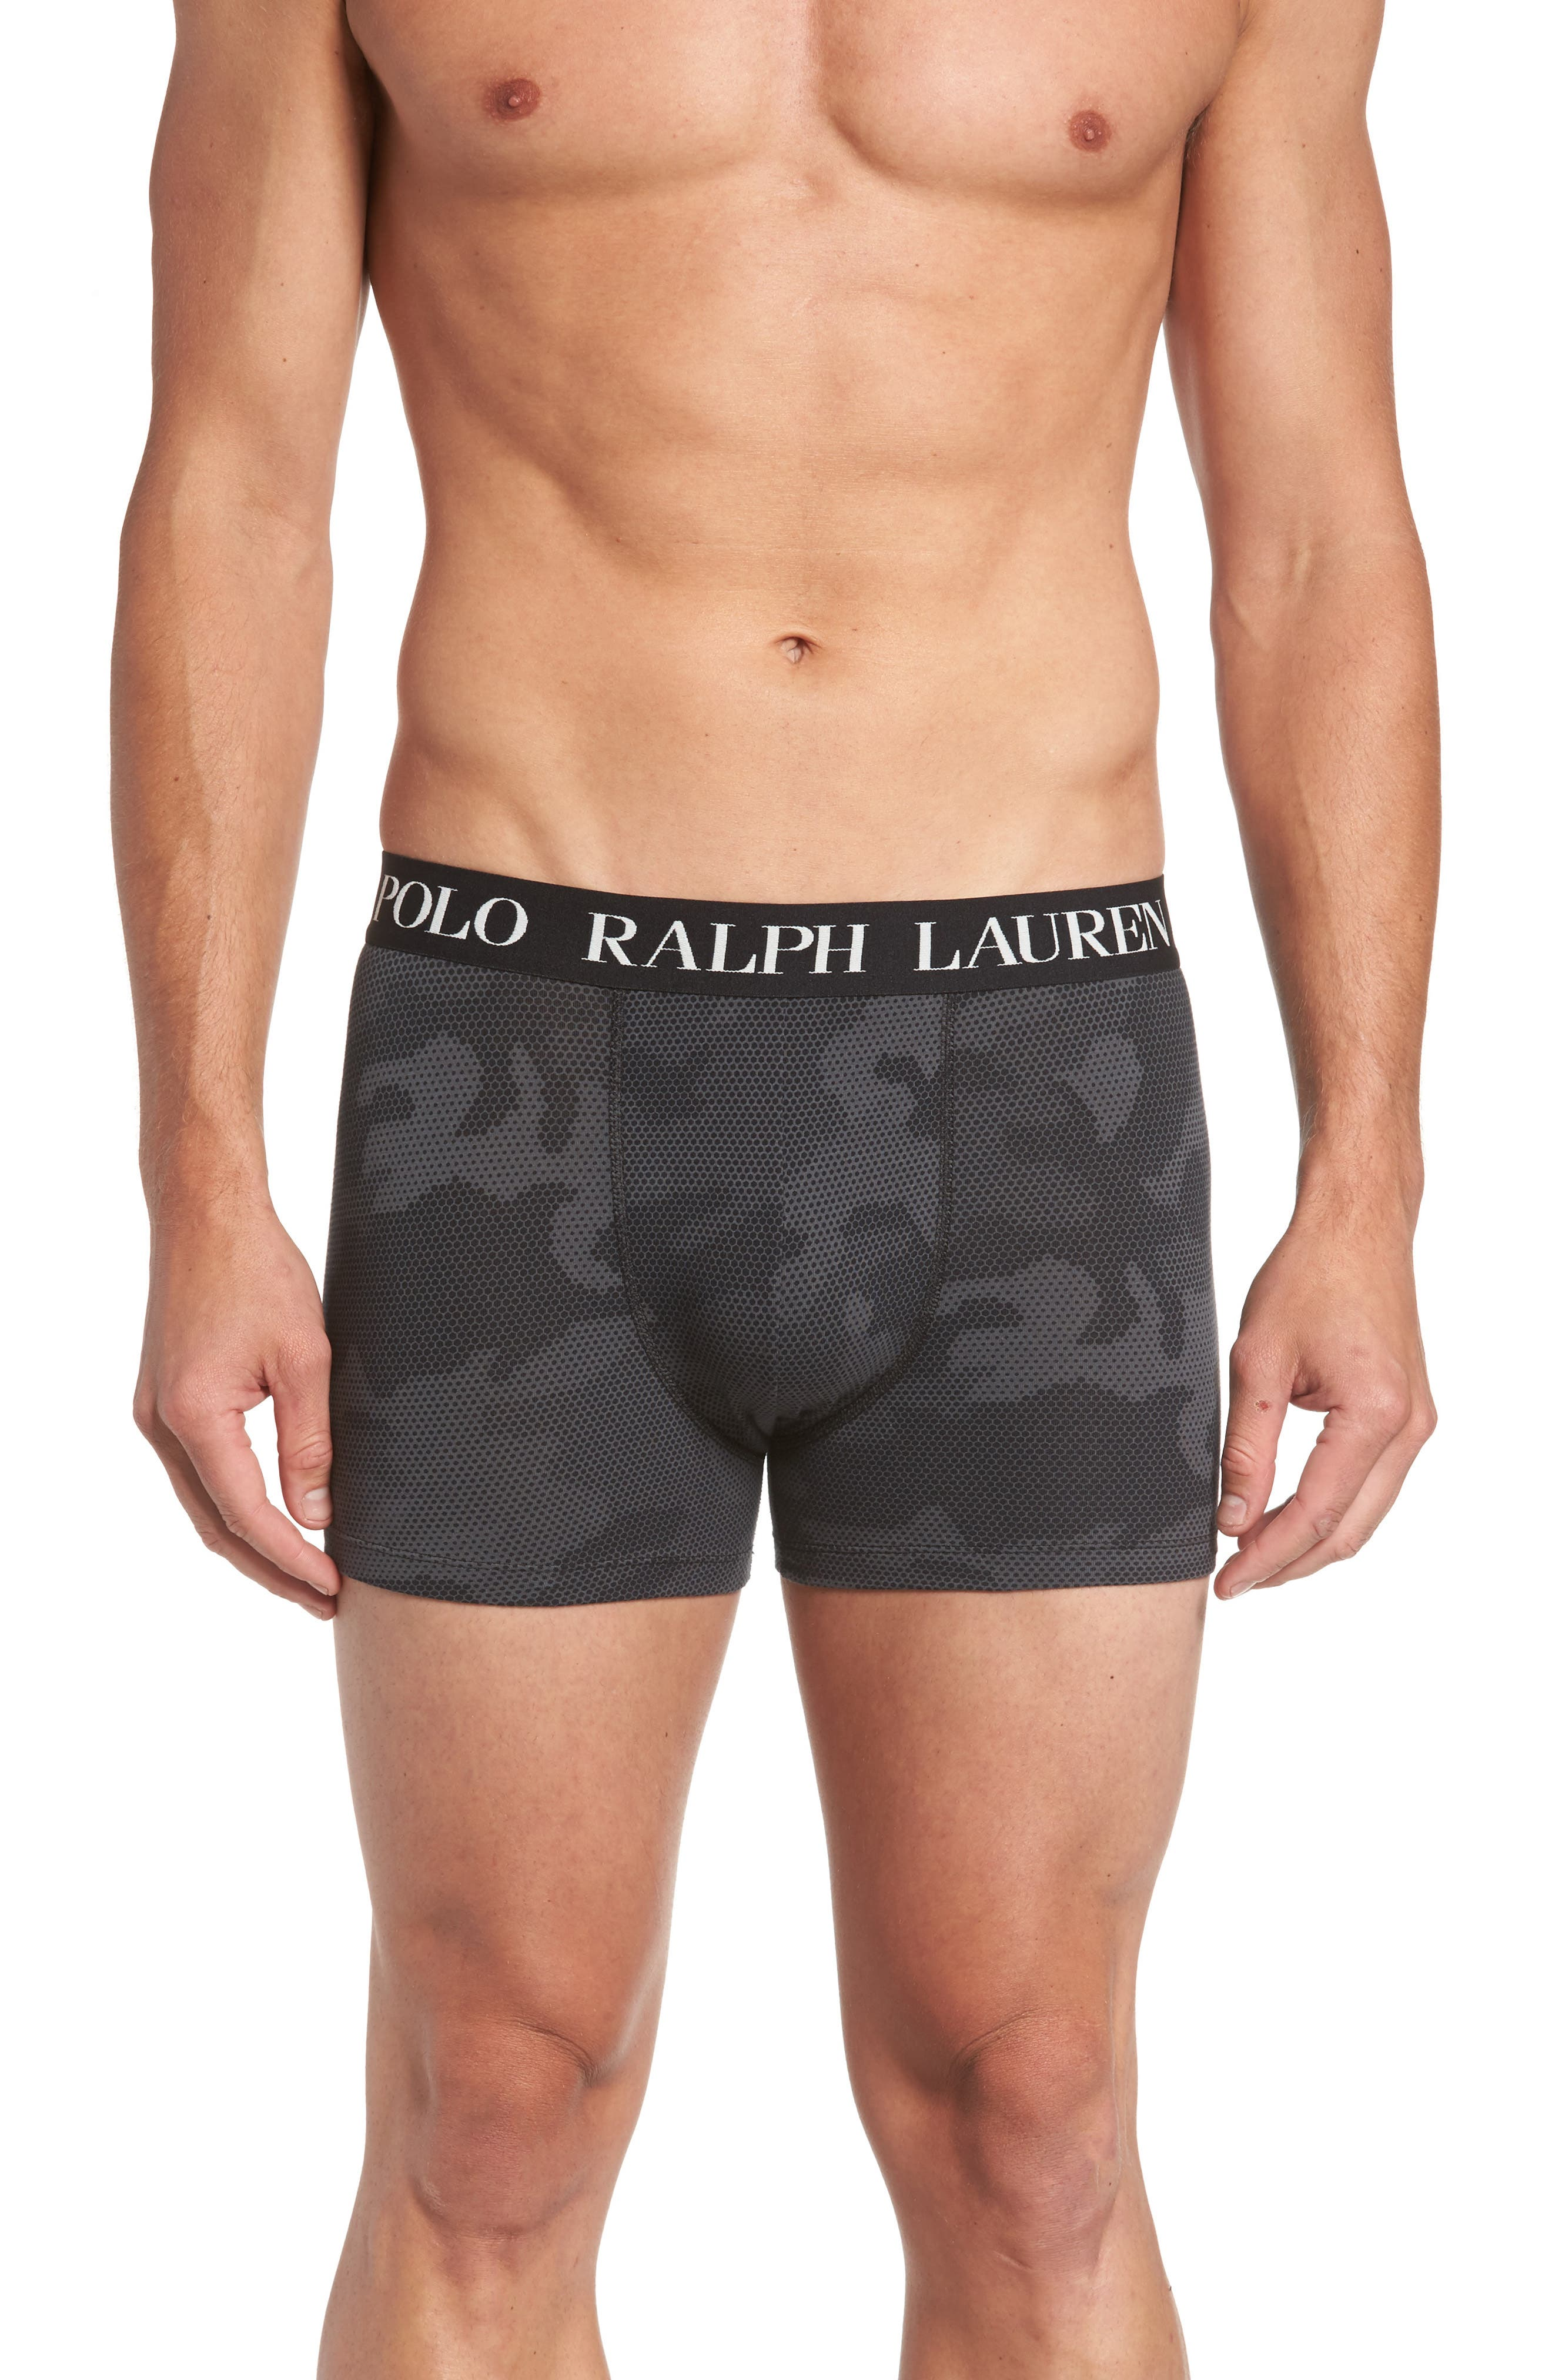 Polo Ralph Lauren Stretch Cotton Boxer Briefs